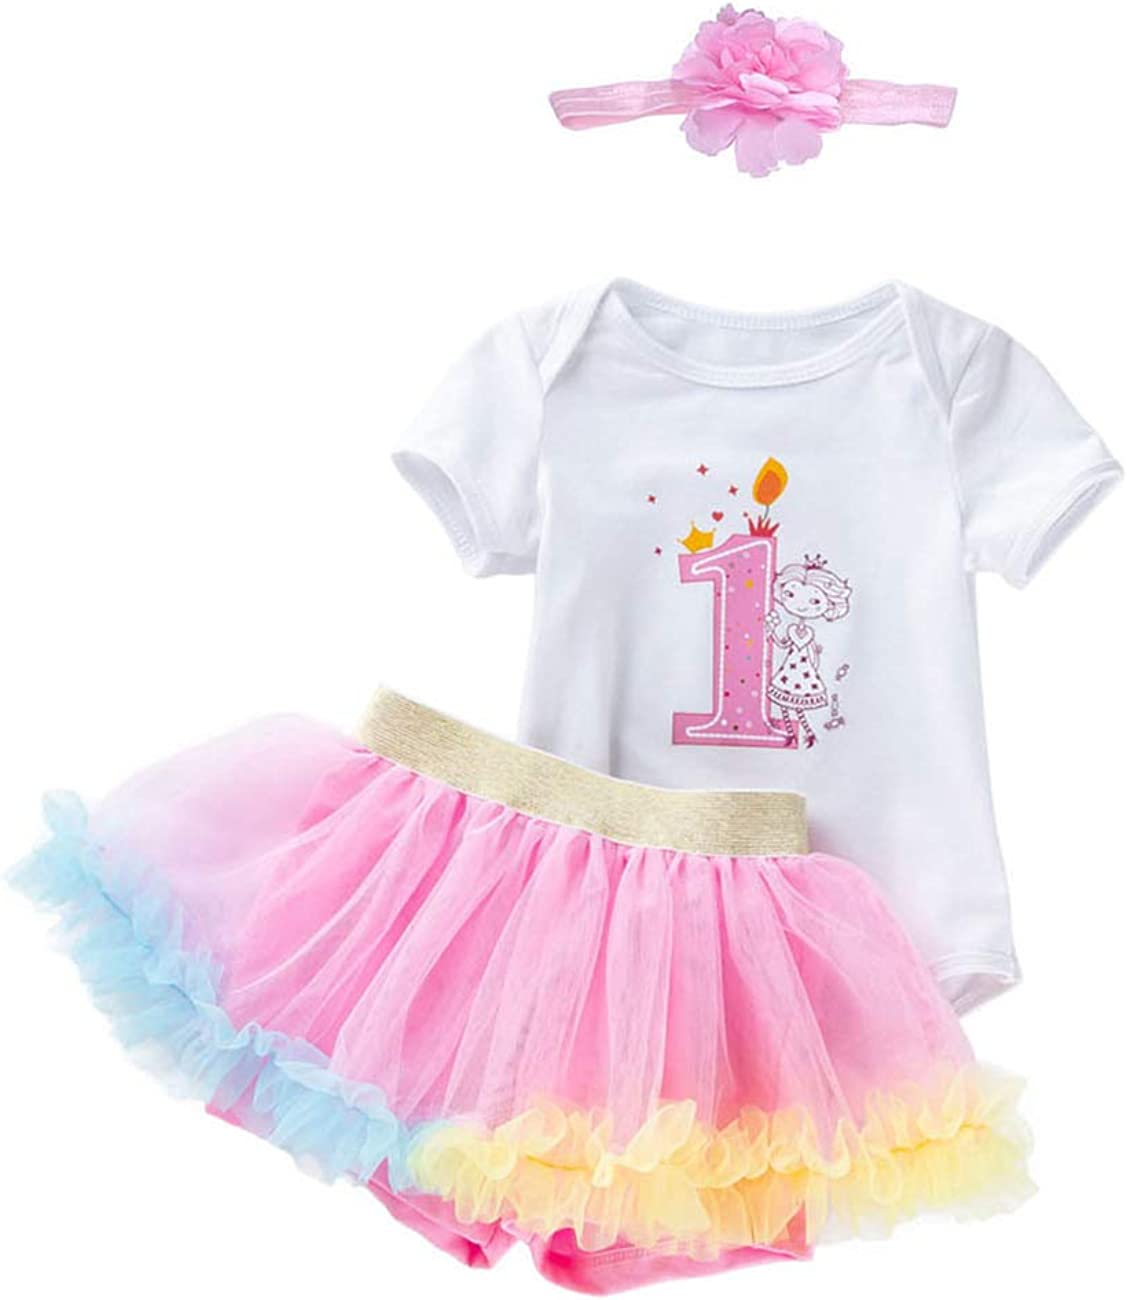 kislin 1st Birthday Outfit Girl Tutu Skirt Bodysuits Baby Costumes 1 Year Old Girl Gifts Skorts